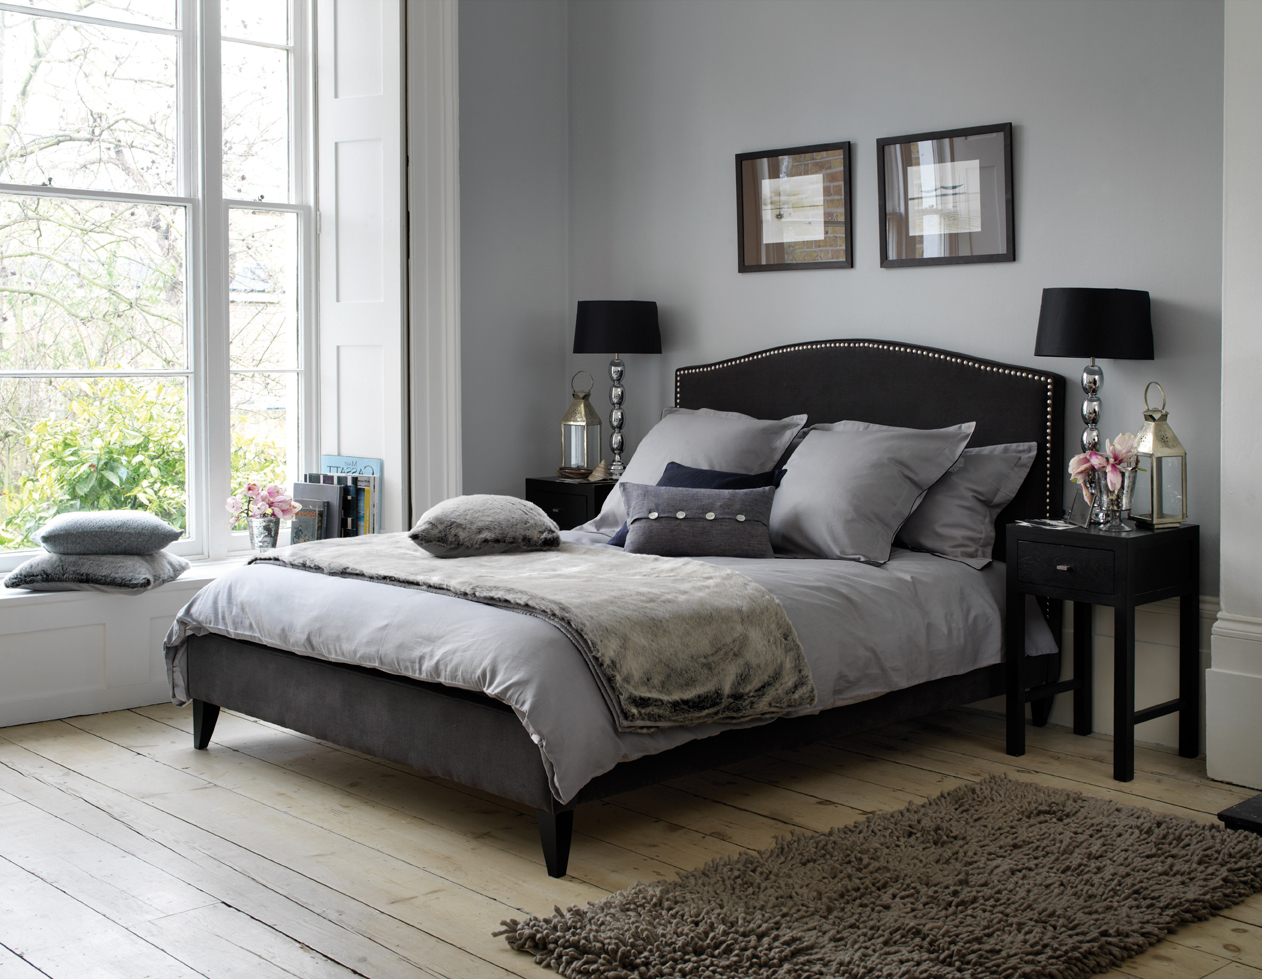 Gothic Einrichtung Schlafzimmer Gothic Bedroom In Grey Color 8371 House Decoration Ideas